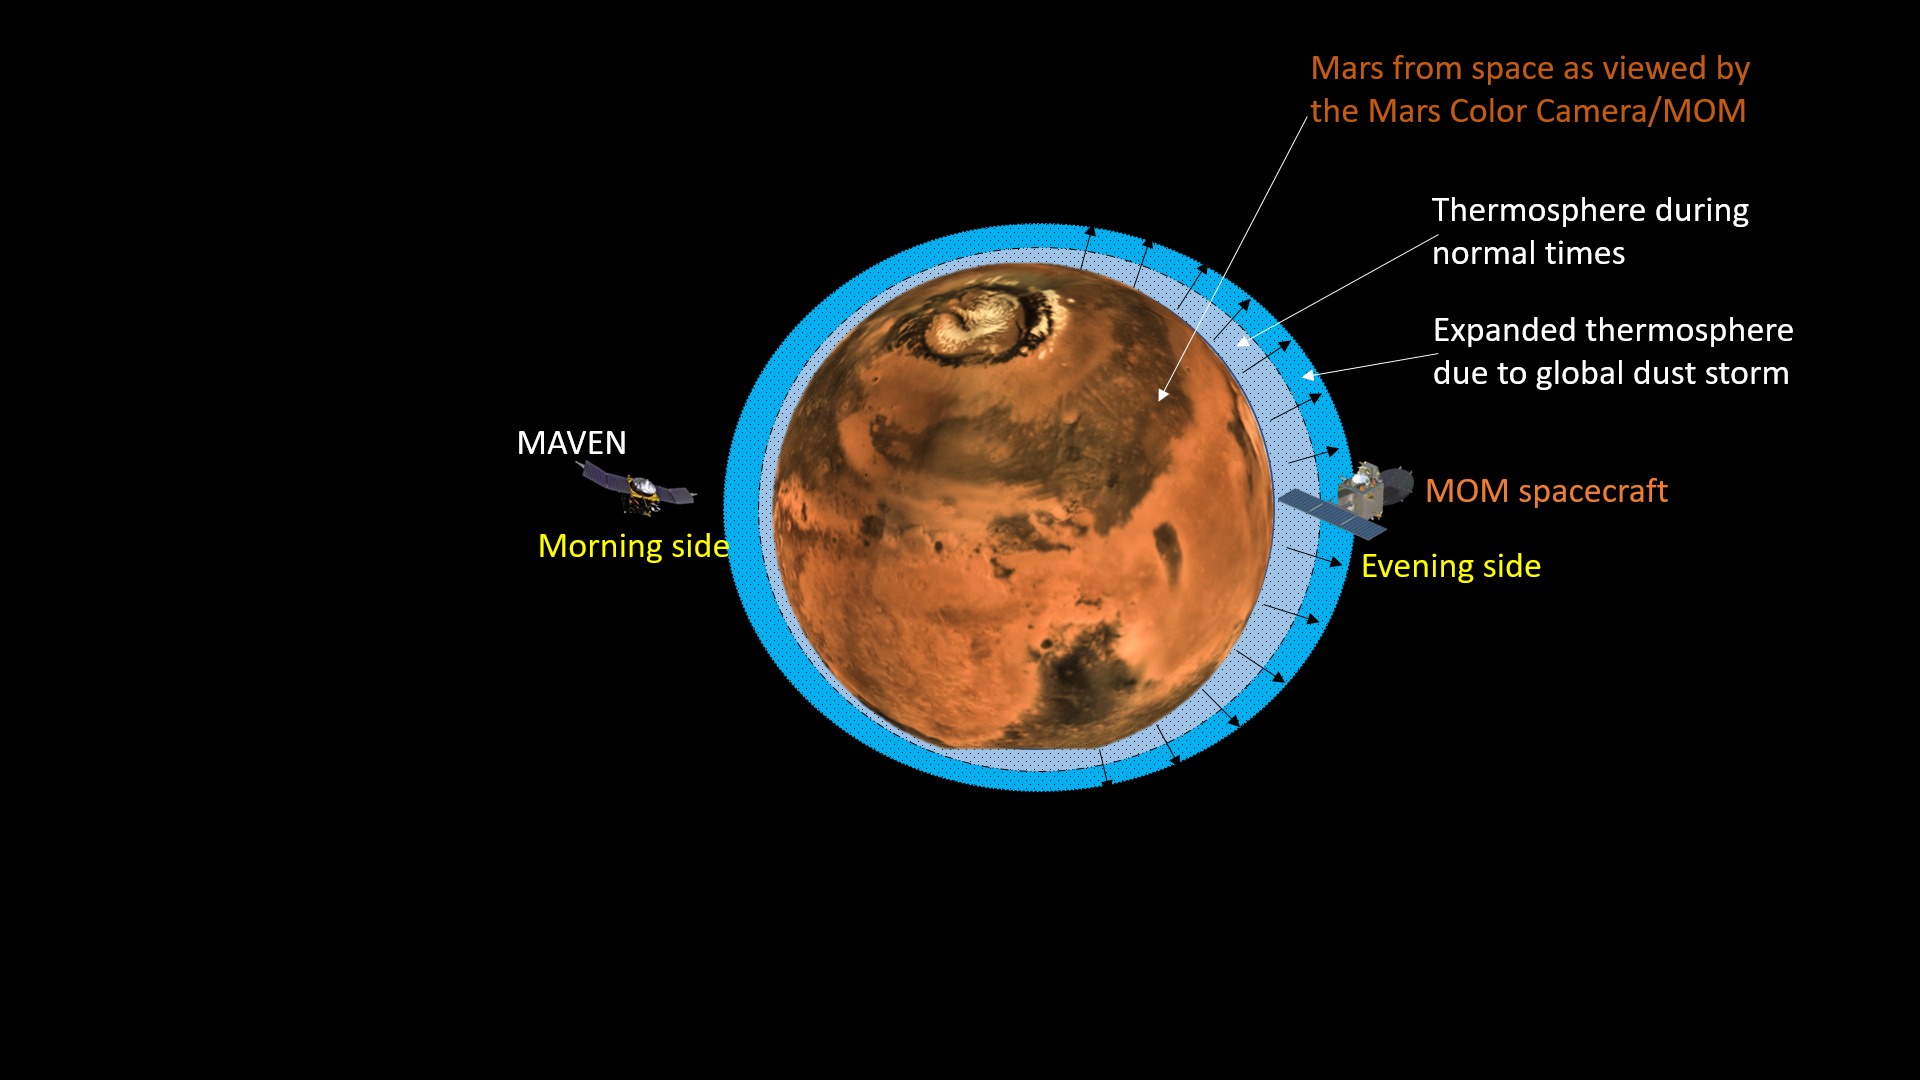 An artistic impression of the Mars upper atmospheric expansion due to the global dust storm